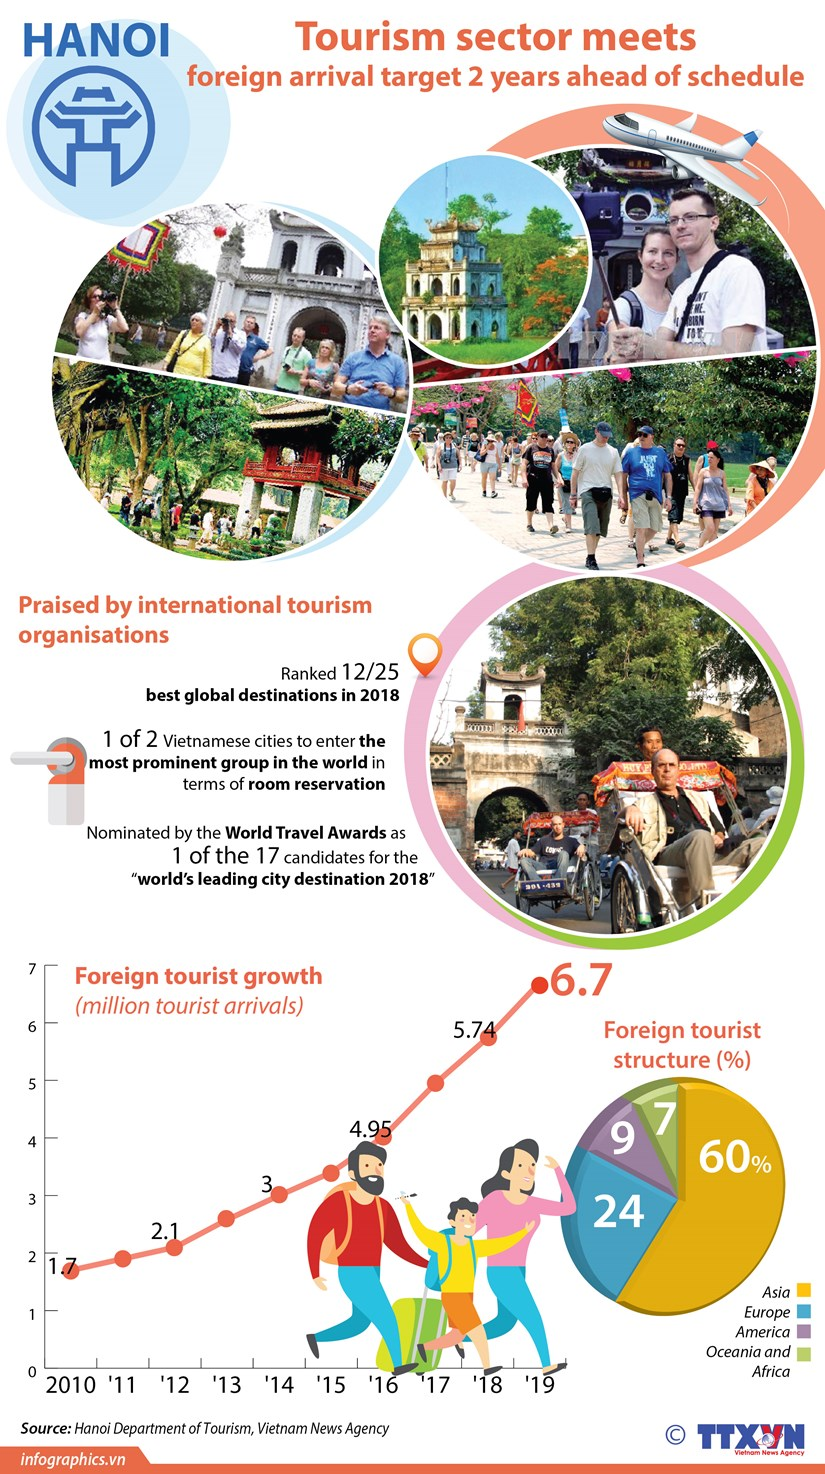 Tourism sector meets foreign arrival target 2 years ahead of schedule hinh anh 1